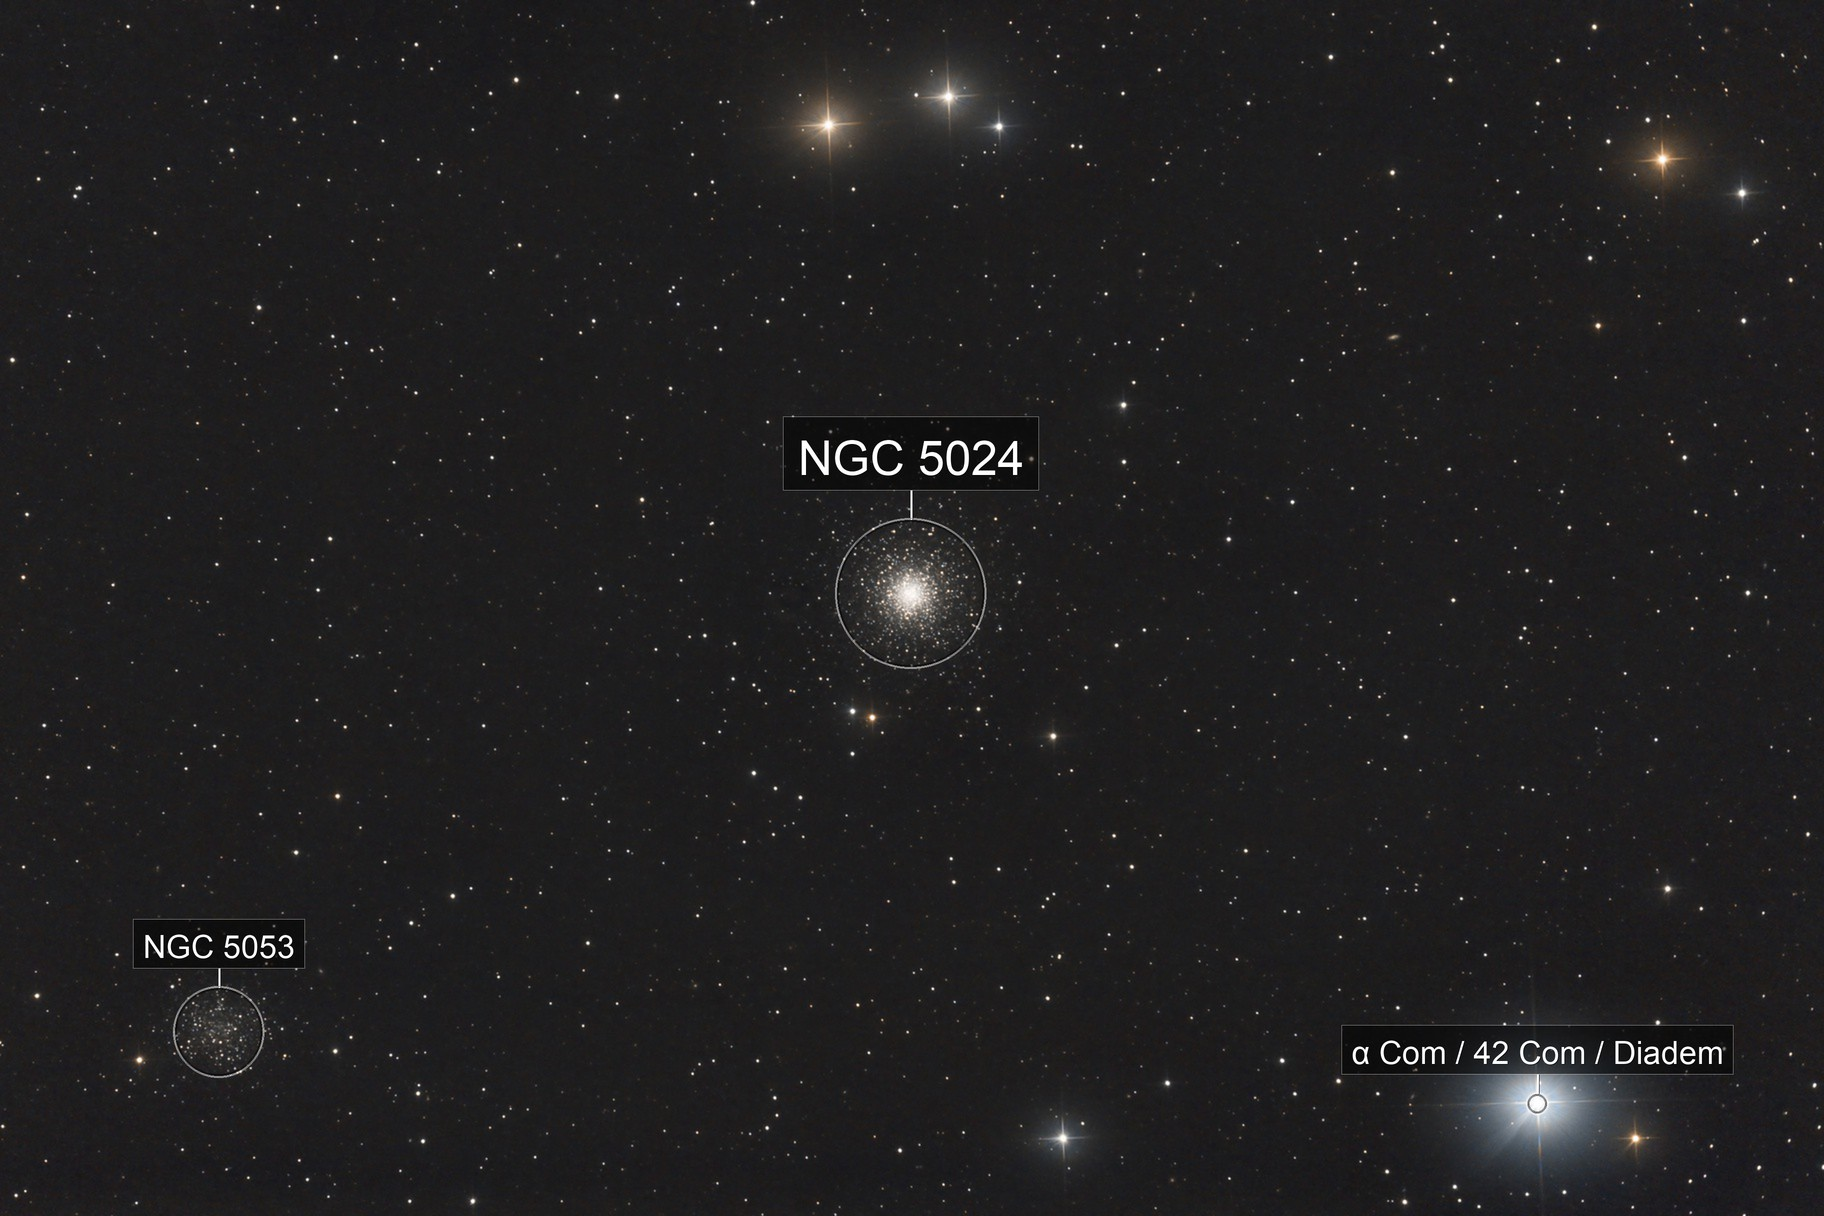 M53 and NGC5053 - Coma Berenice